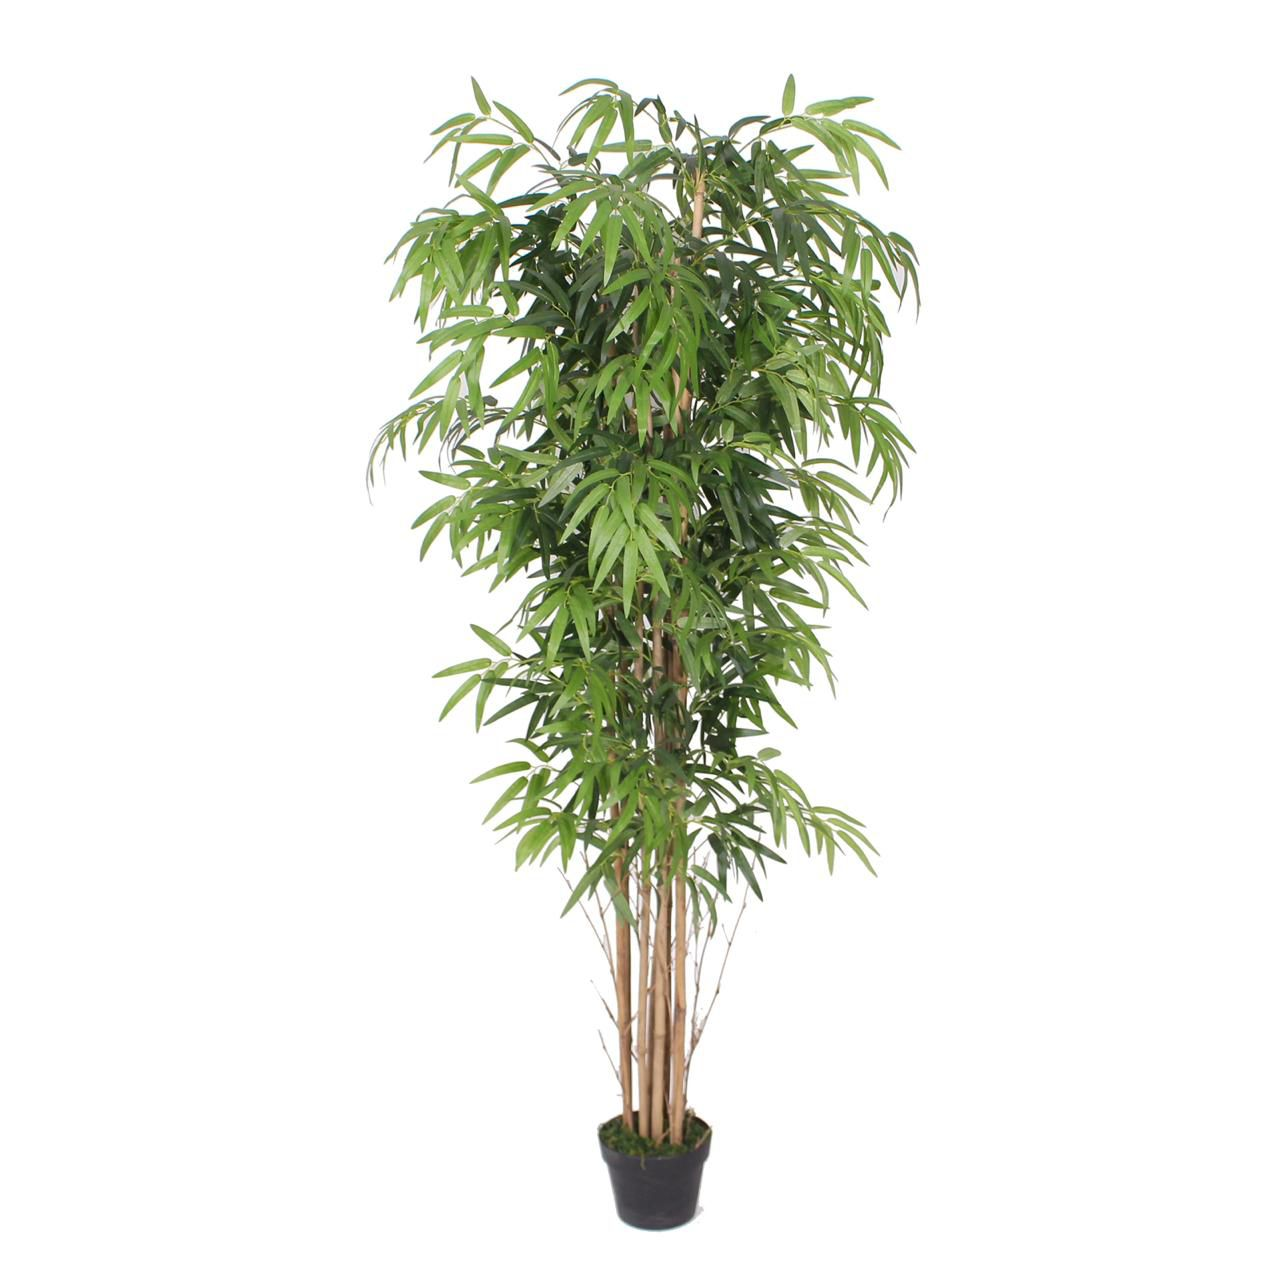 Planta Bambu Caule Natural Permanente 1,80 cm